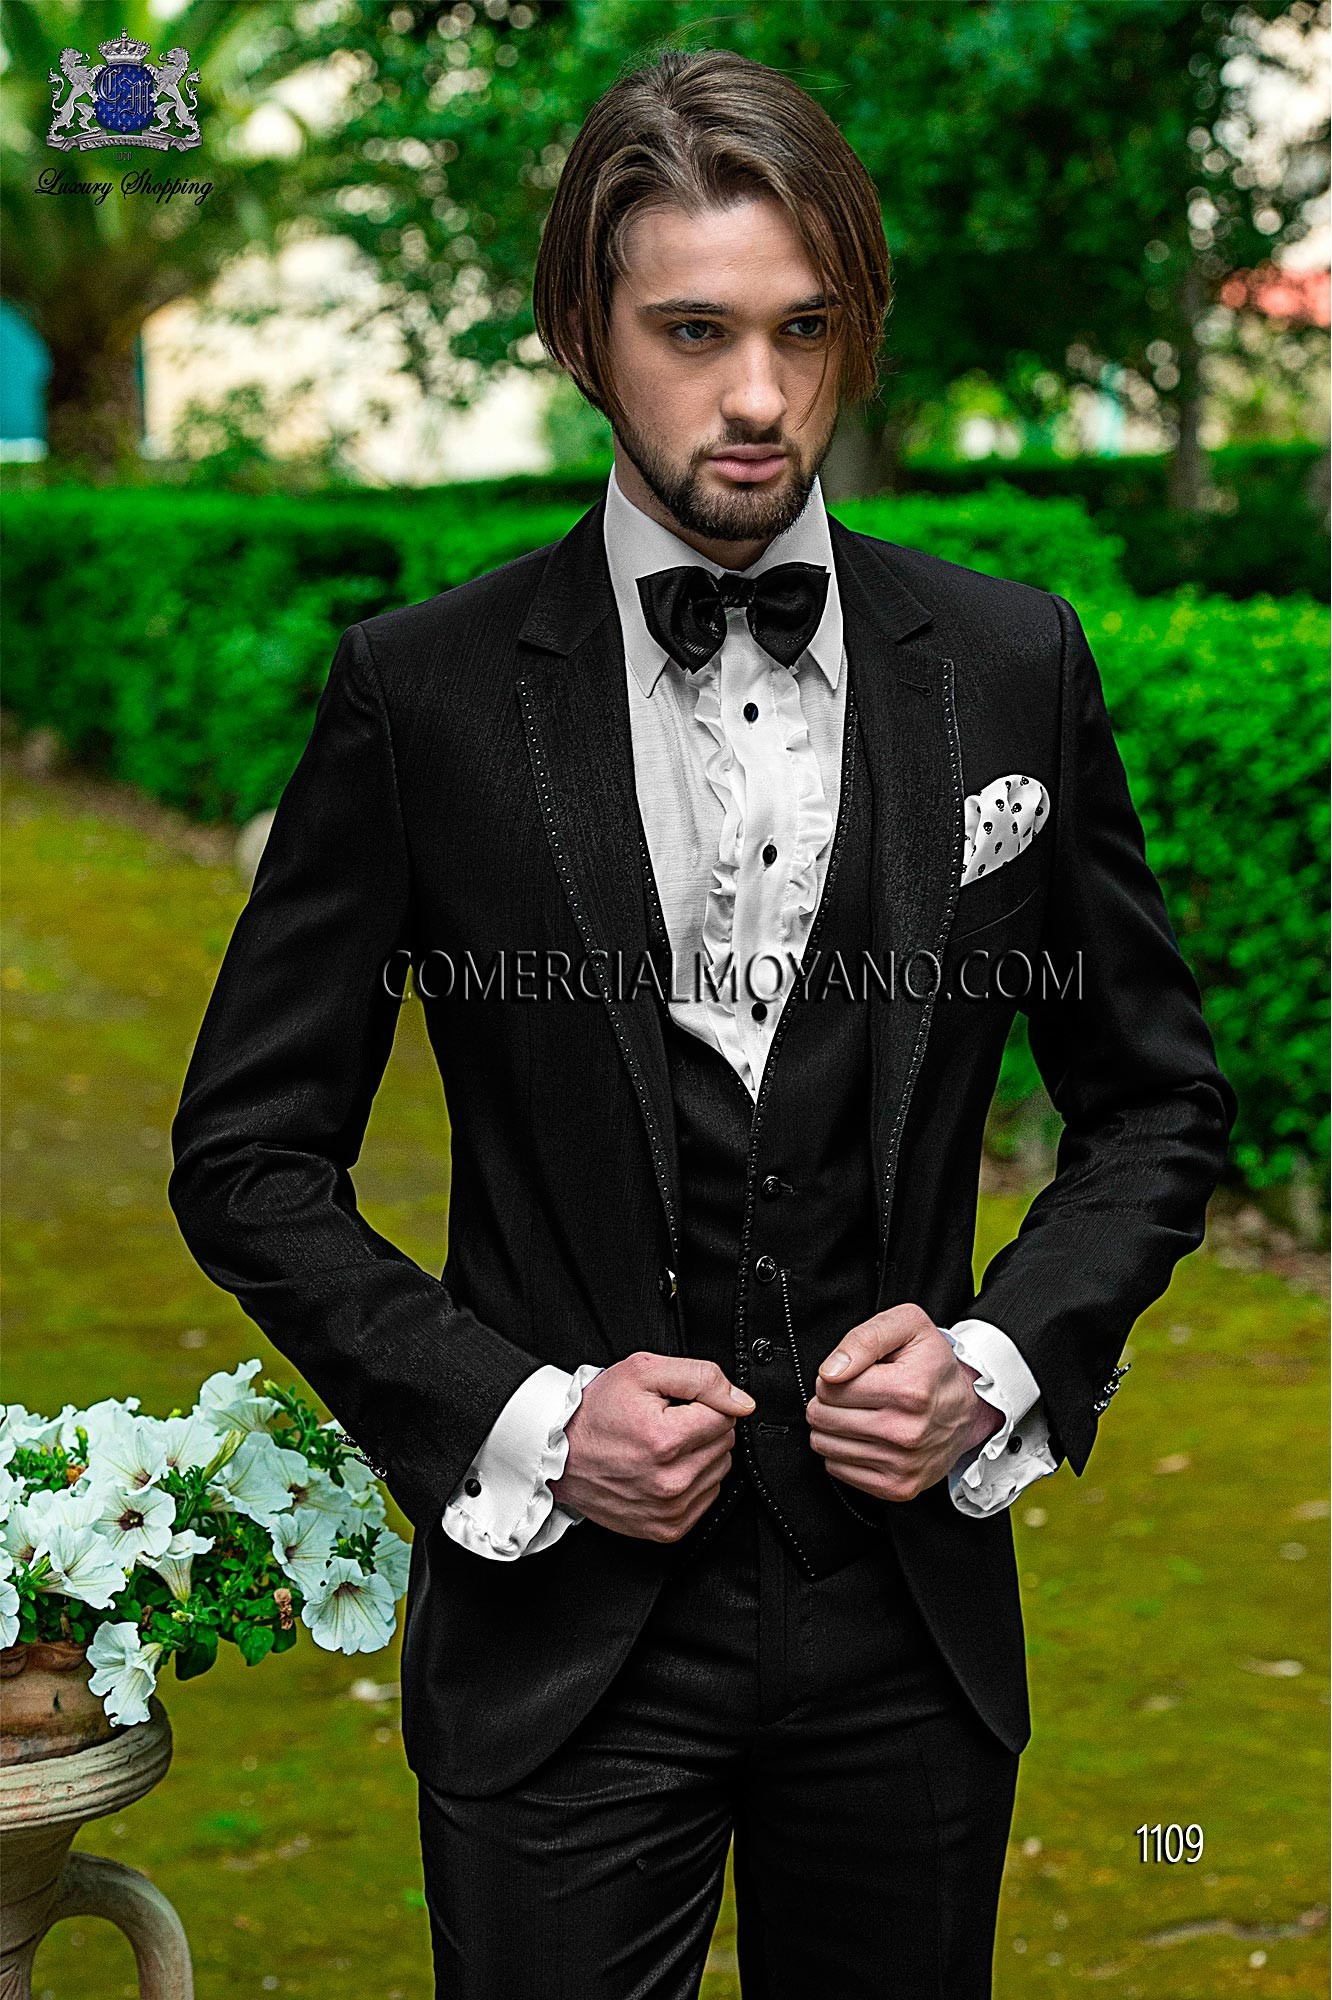 Fashion black men wedding suit model 1109 Ottavio Nuccio Gala